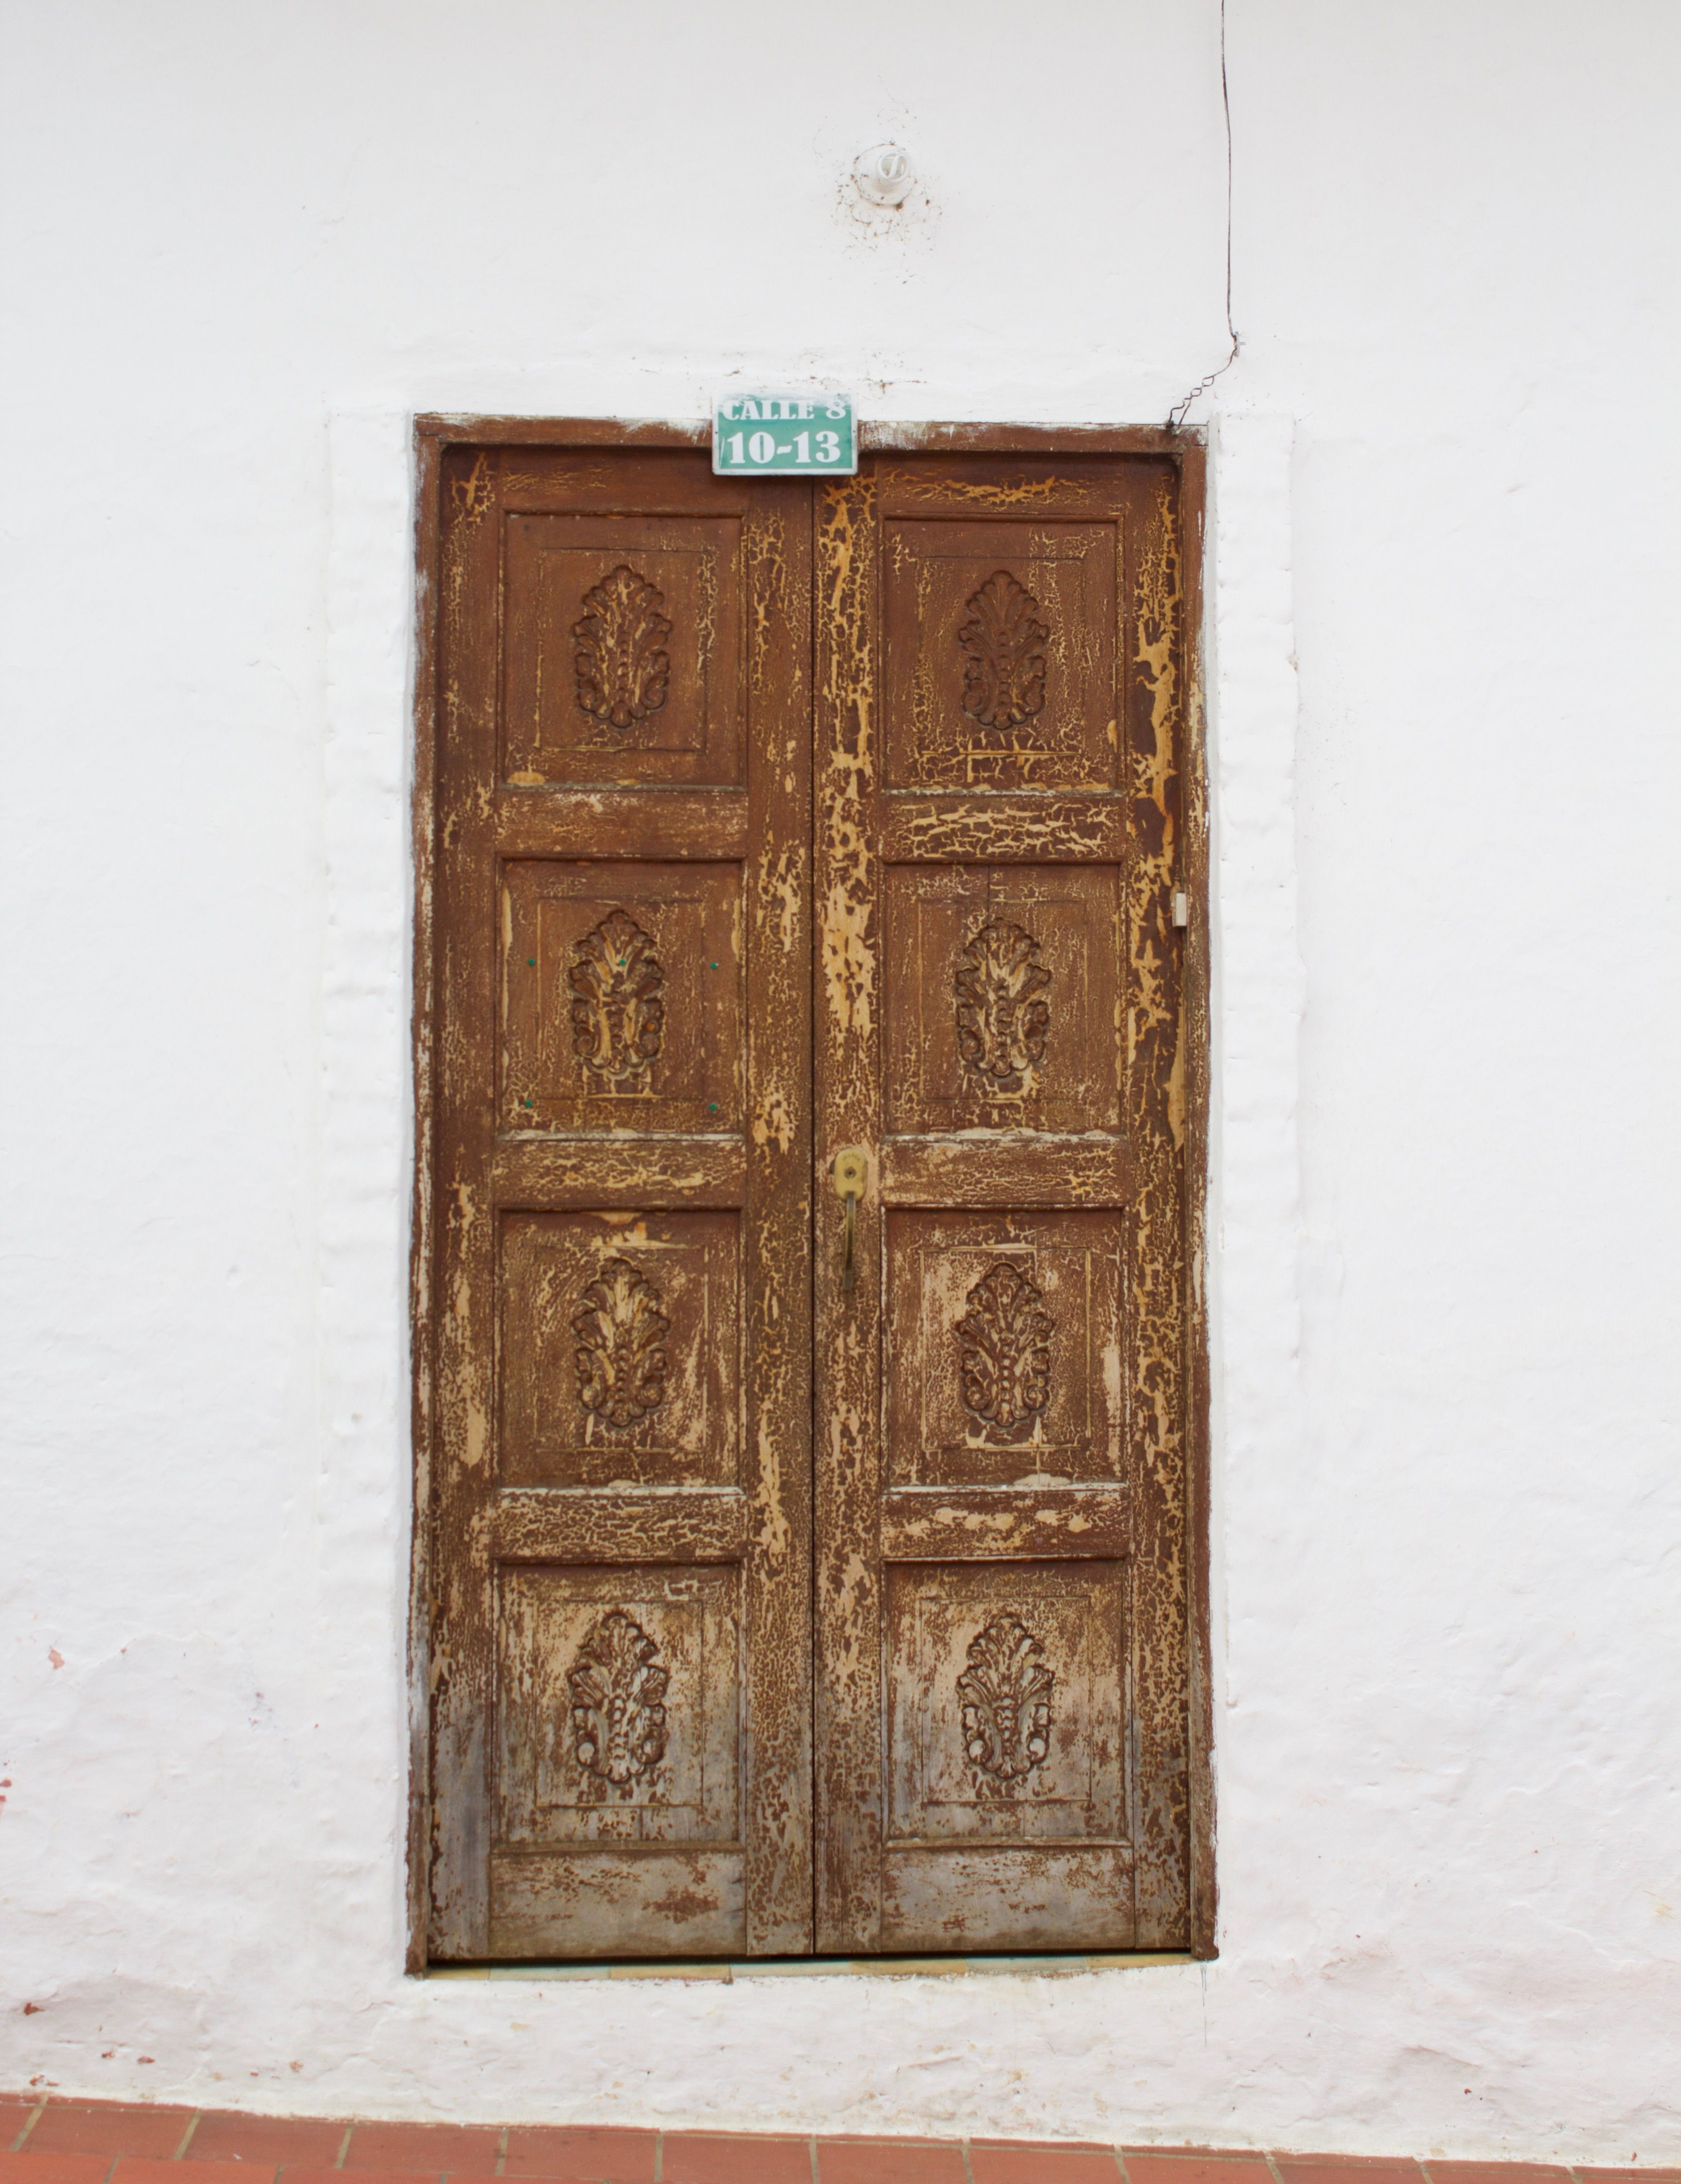 Big wooden doors are a typical site in small towns across #Colombia. They adorn the cobbled streets beautifully. #Architecture #Travel